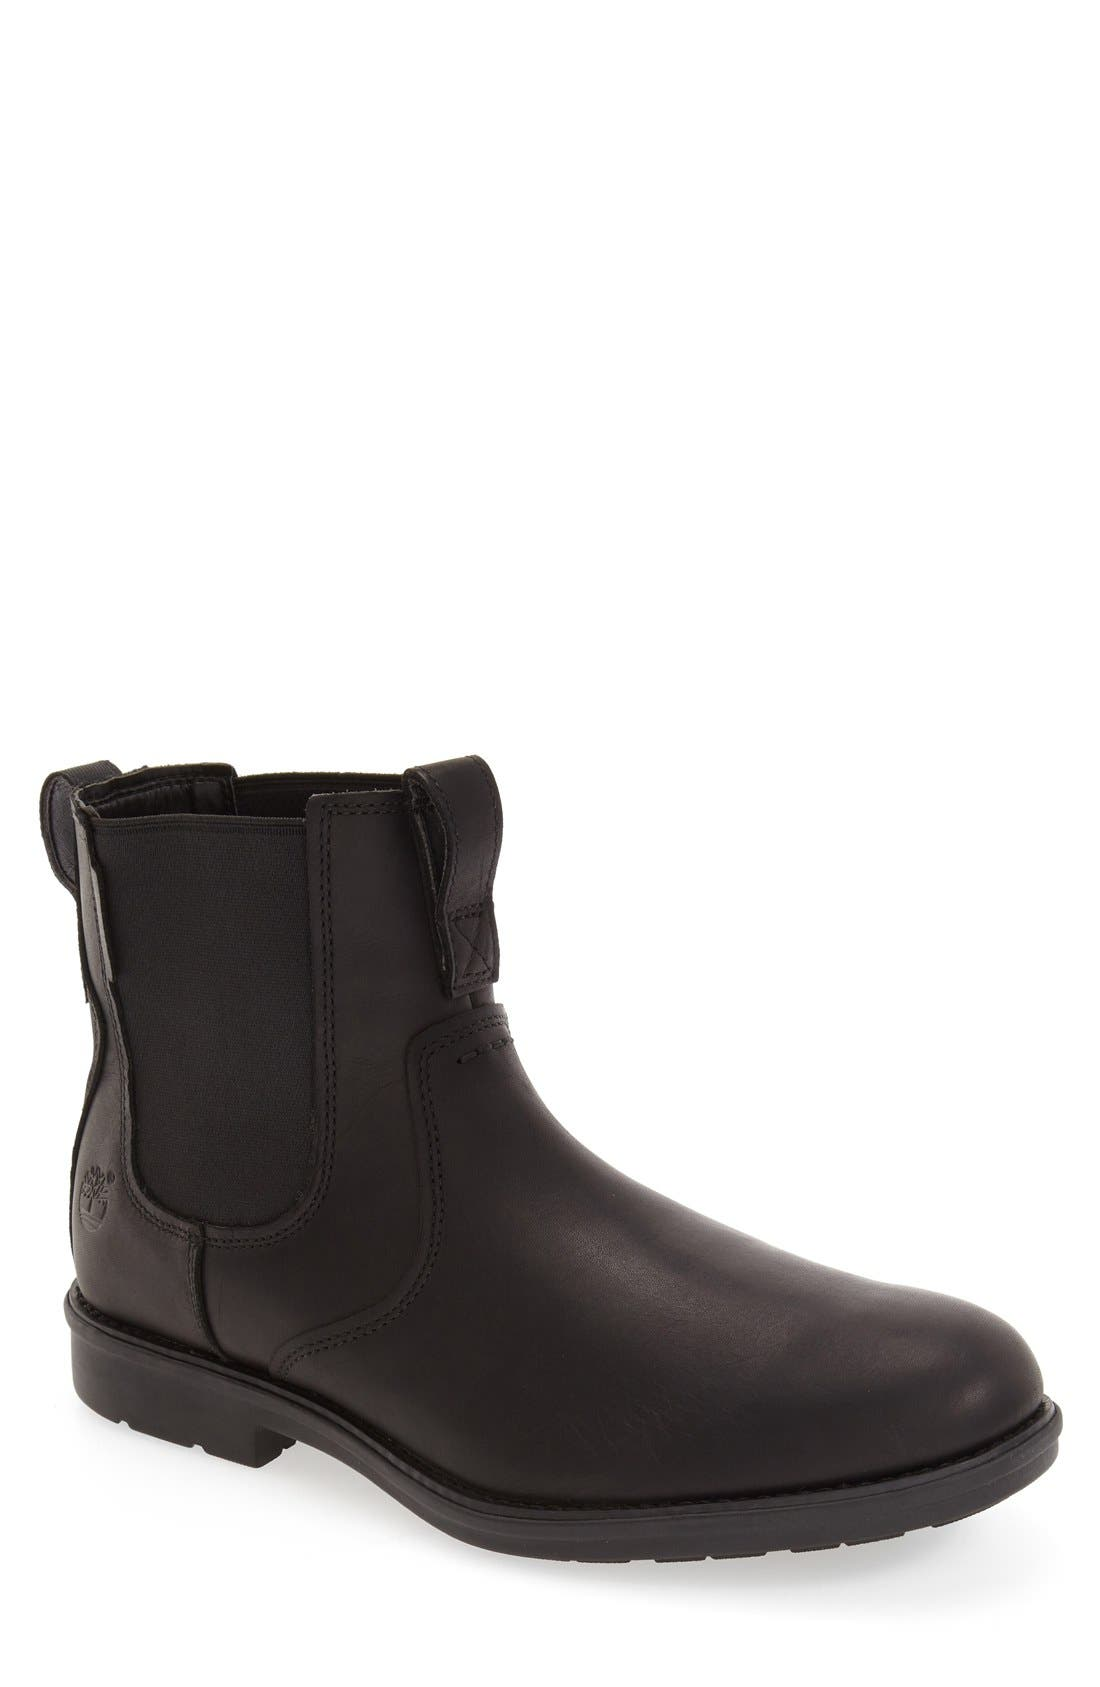 TIMBERLAND 'Carter' Chelsea Boot, Main, color, 001